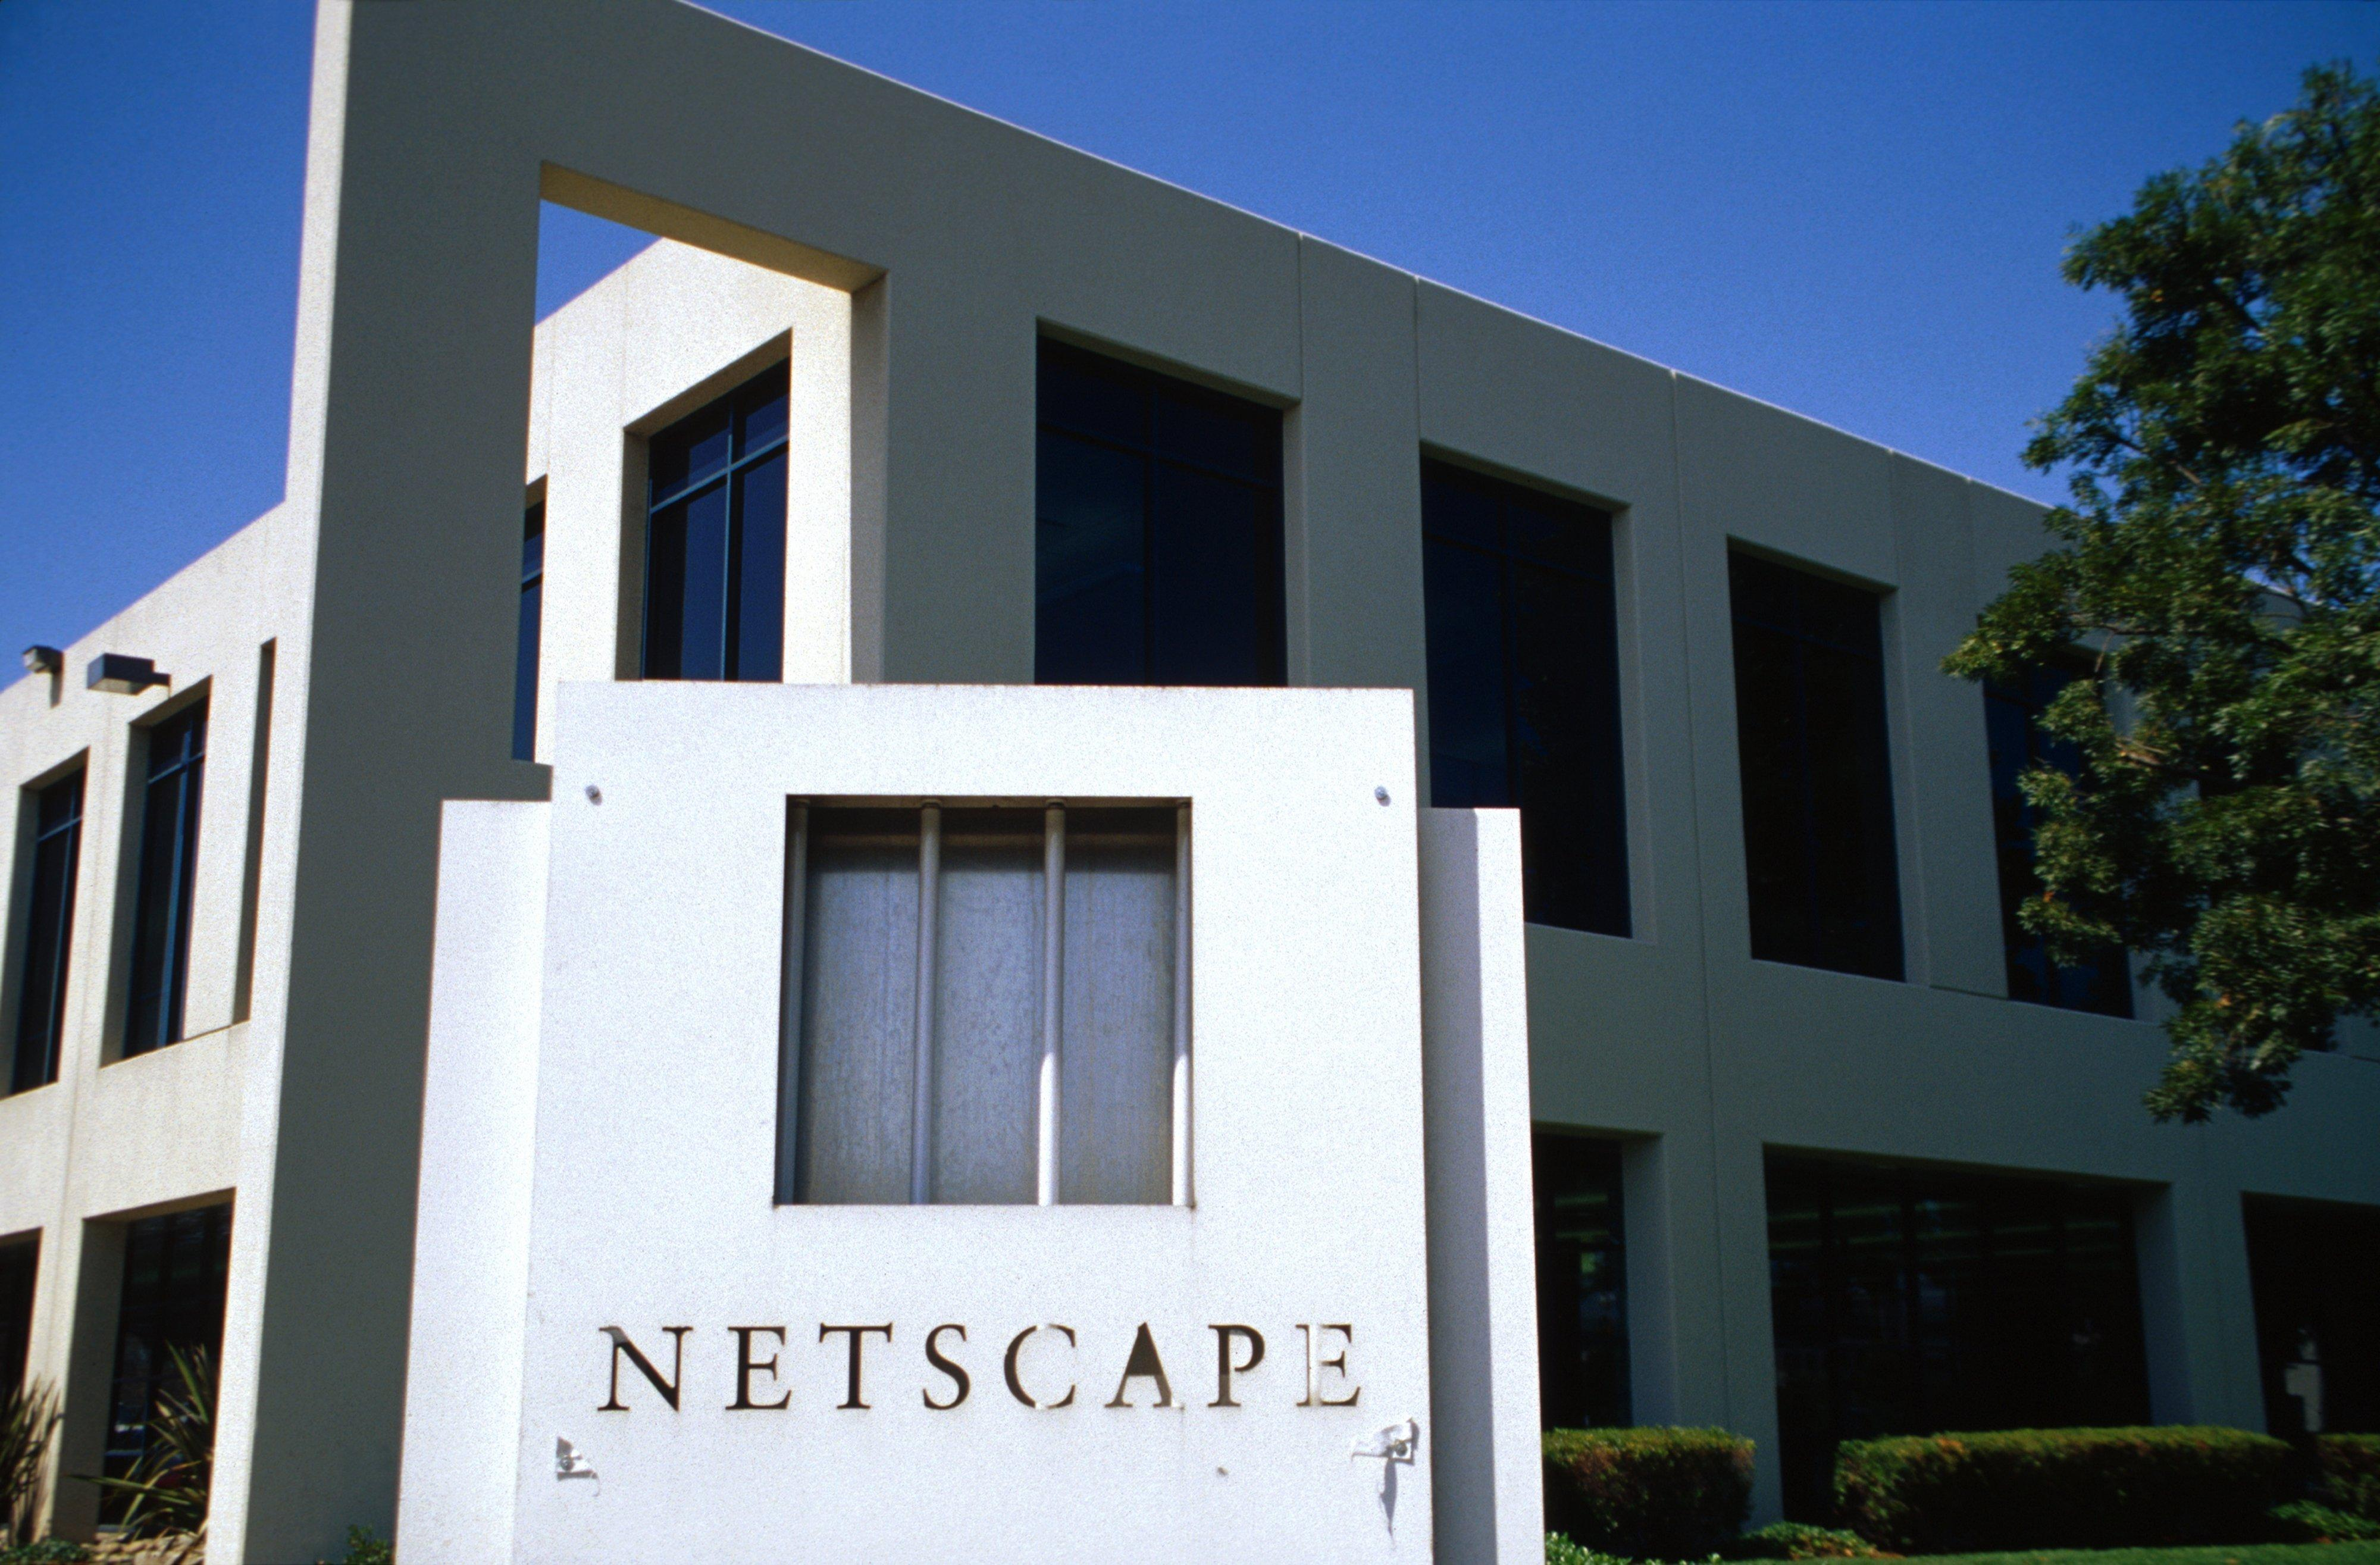 California, Mountain View, Netscape Sign In Disrepair In Silicon Valley